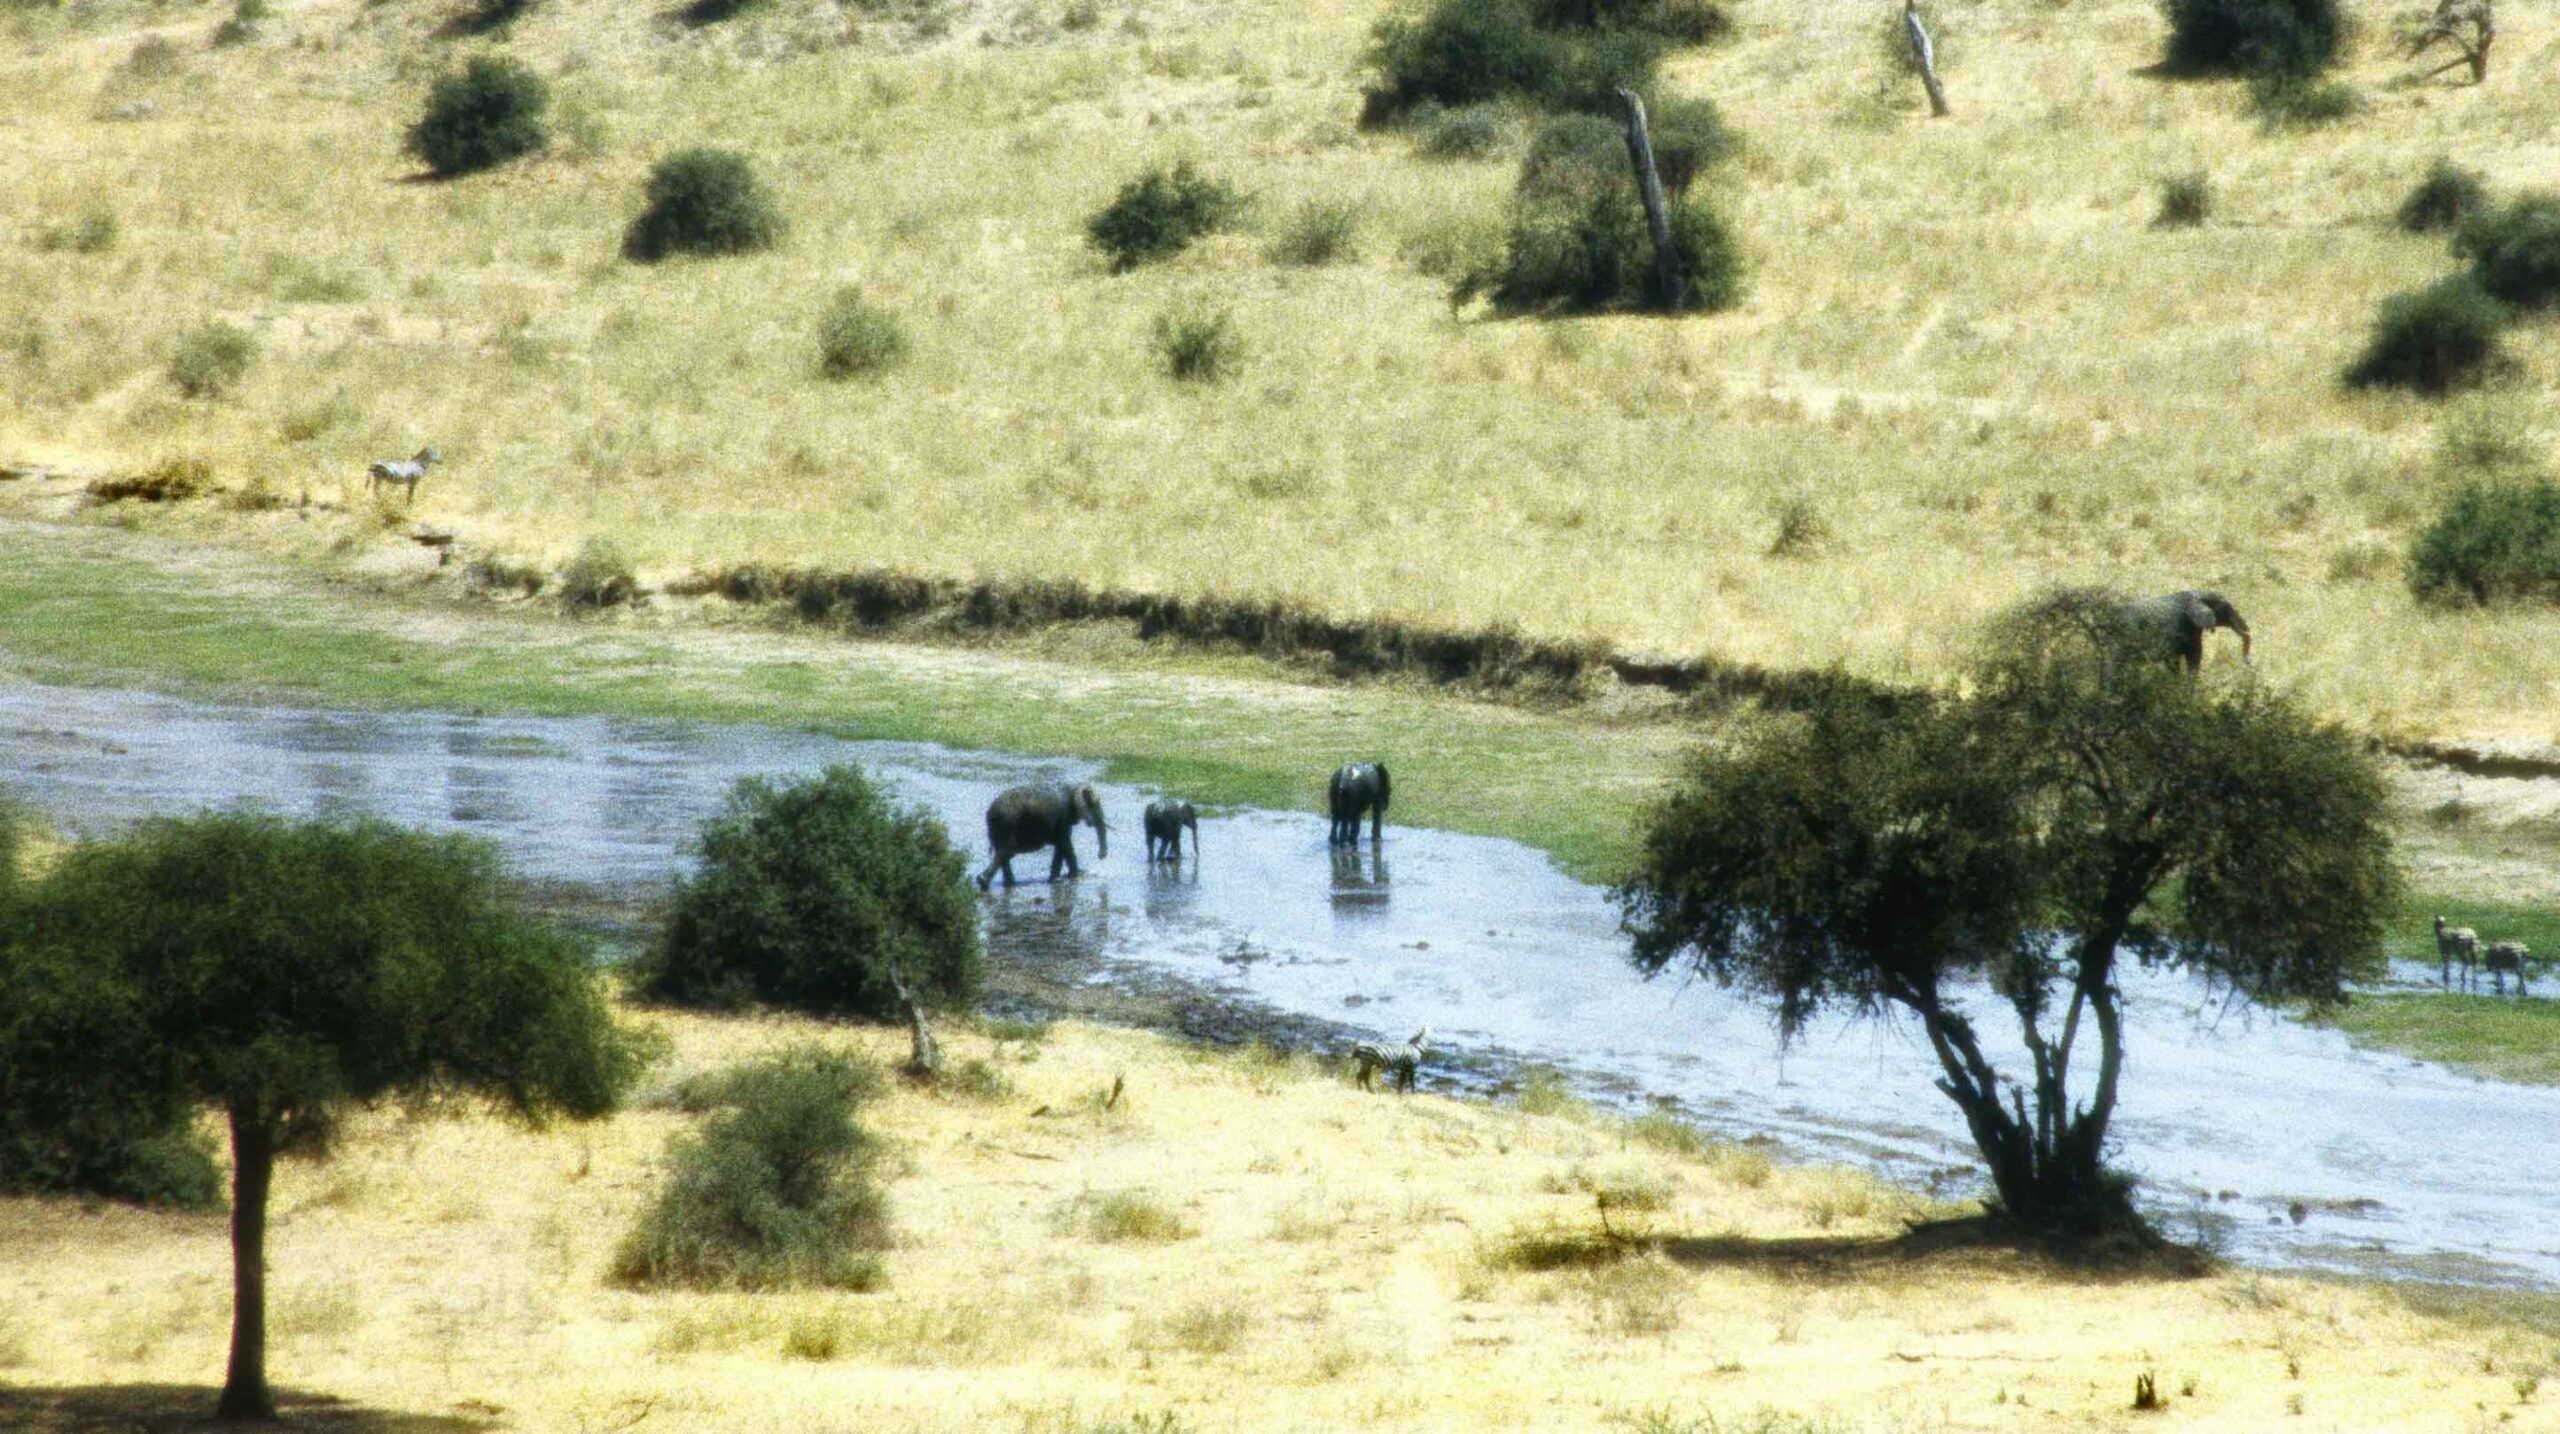 Looking down at a river with three elephants